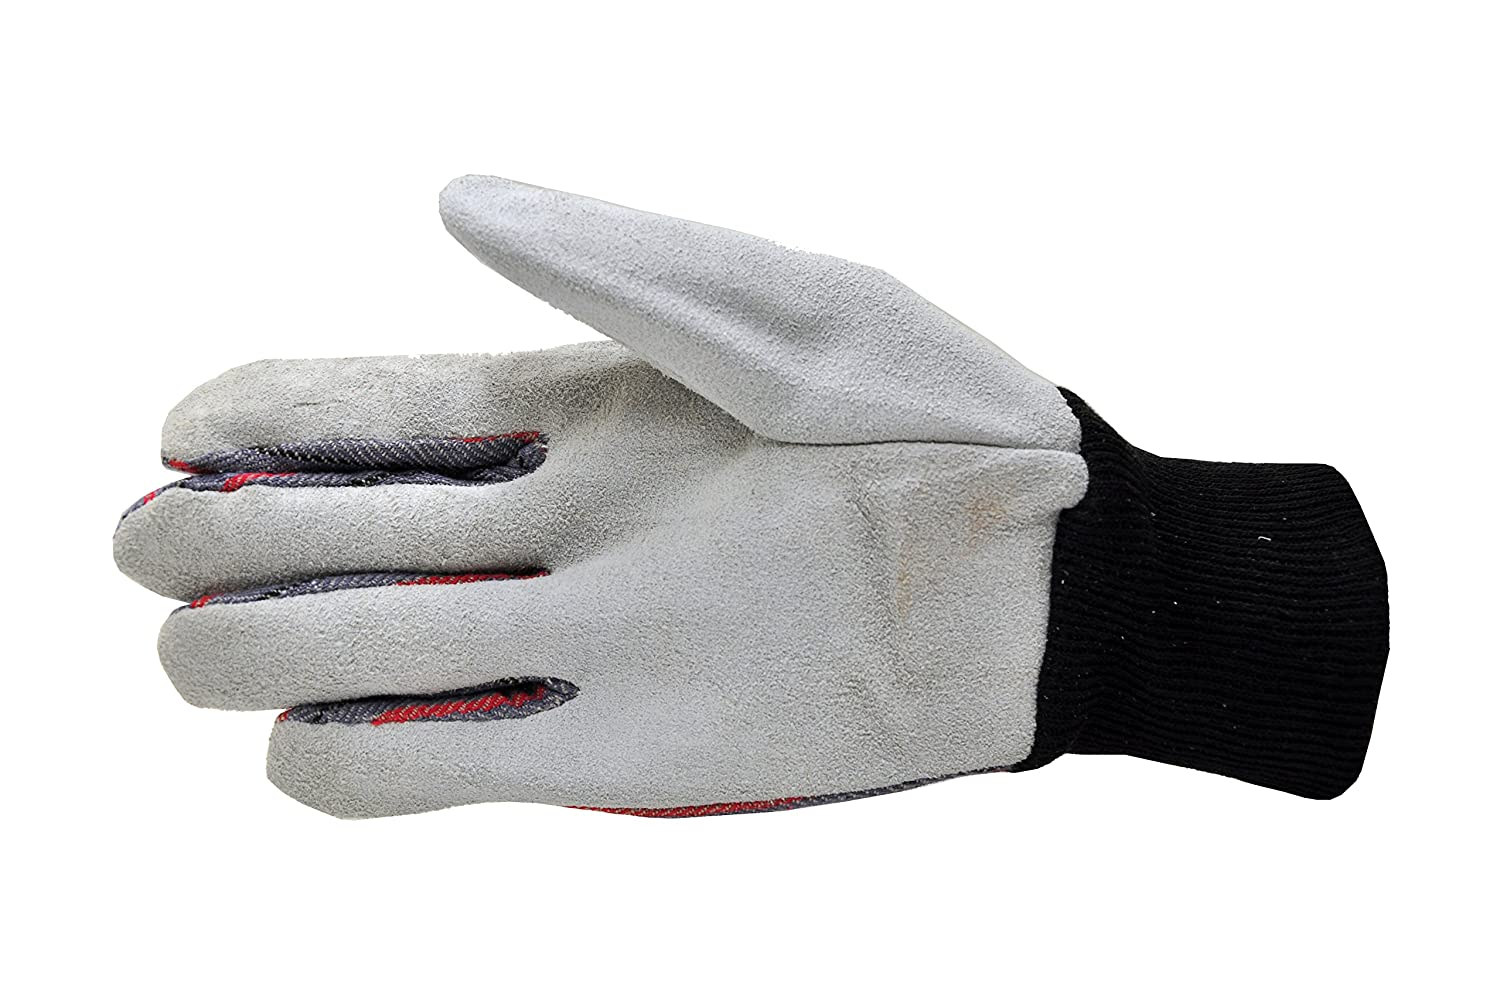 G & F 5004-5 Leather Palm, Canvas Back Knit Wrist Leather Work Gloves, 5-Pair Pack, Men's Large